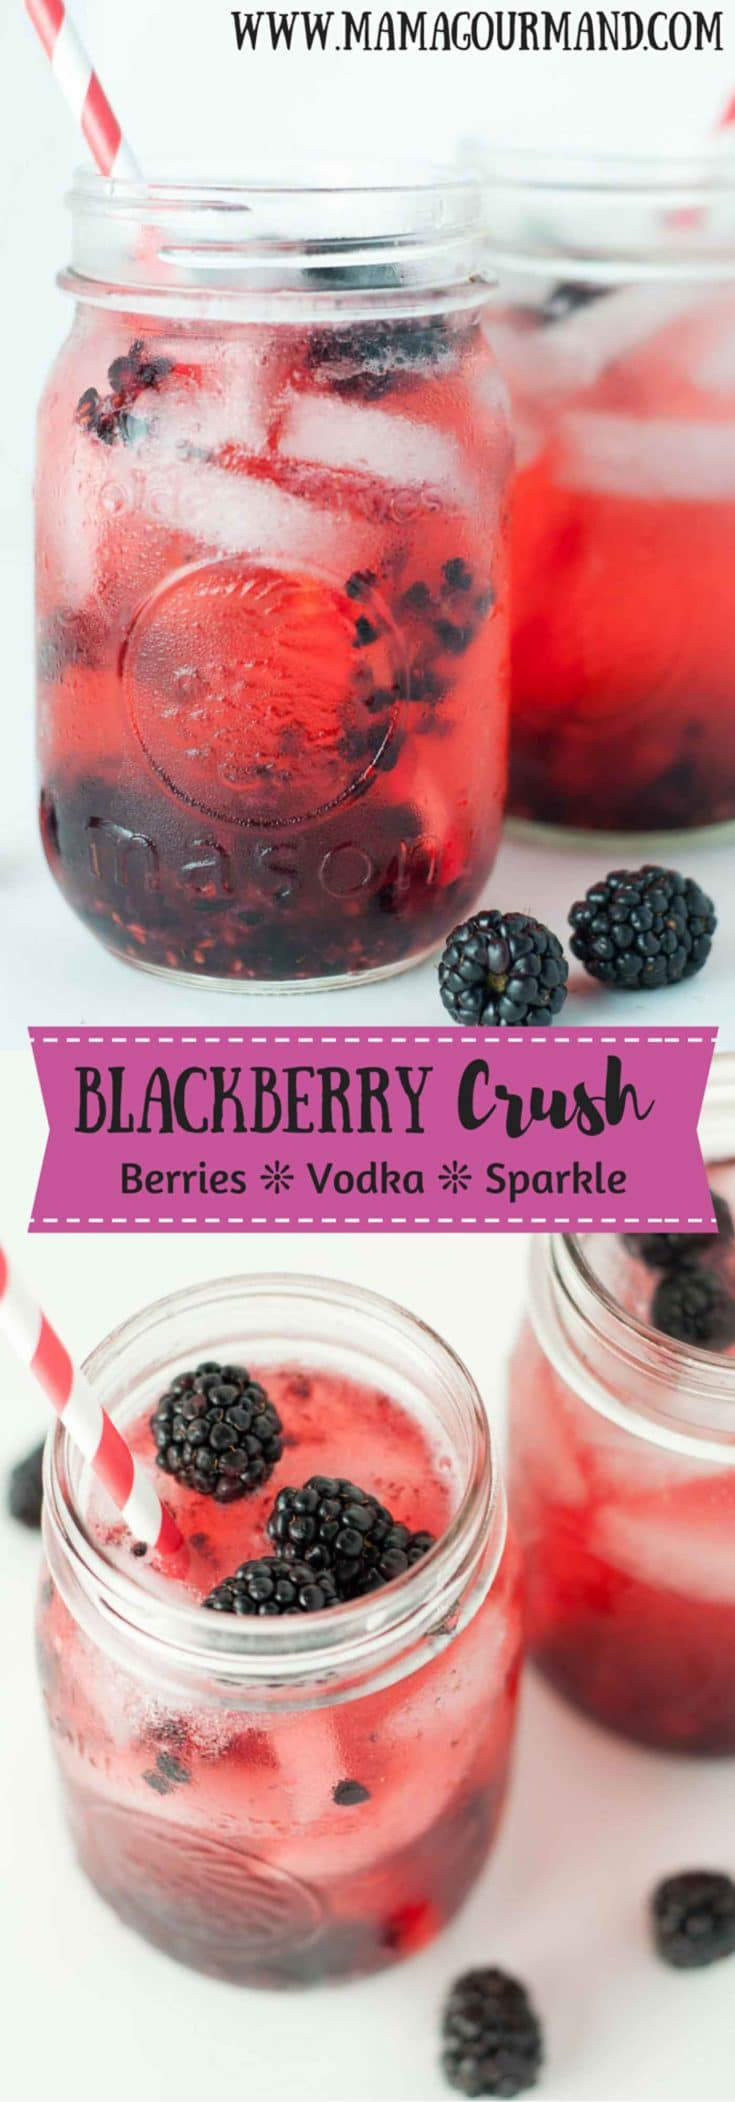 Blackberry Crush cocktail recipe combines vodka and fresh berries in a sparkling, slightly sweet and refreshing drink. https://www.mamagourmand.com